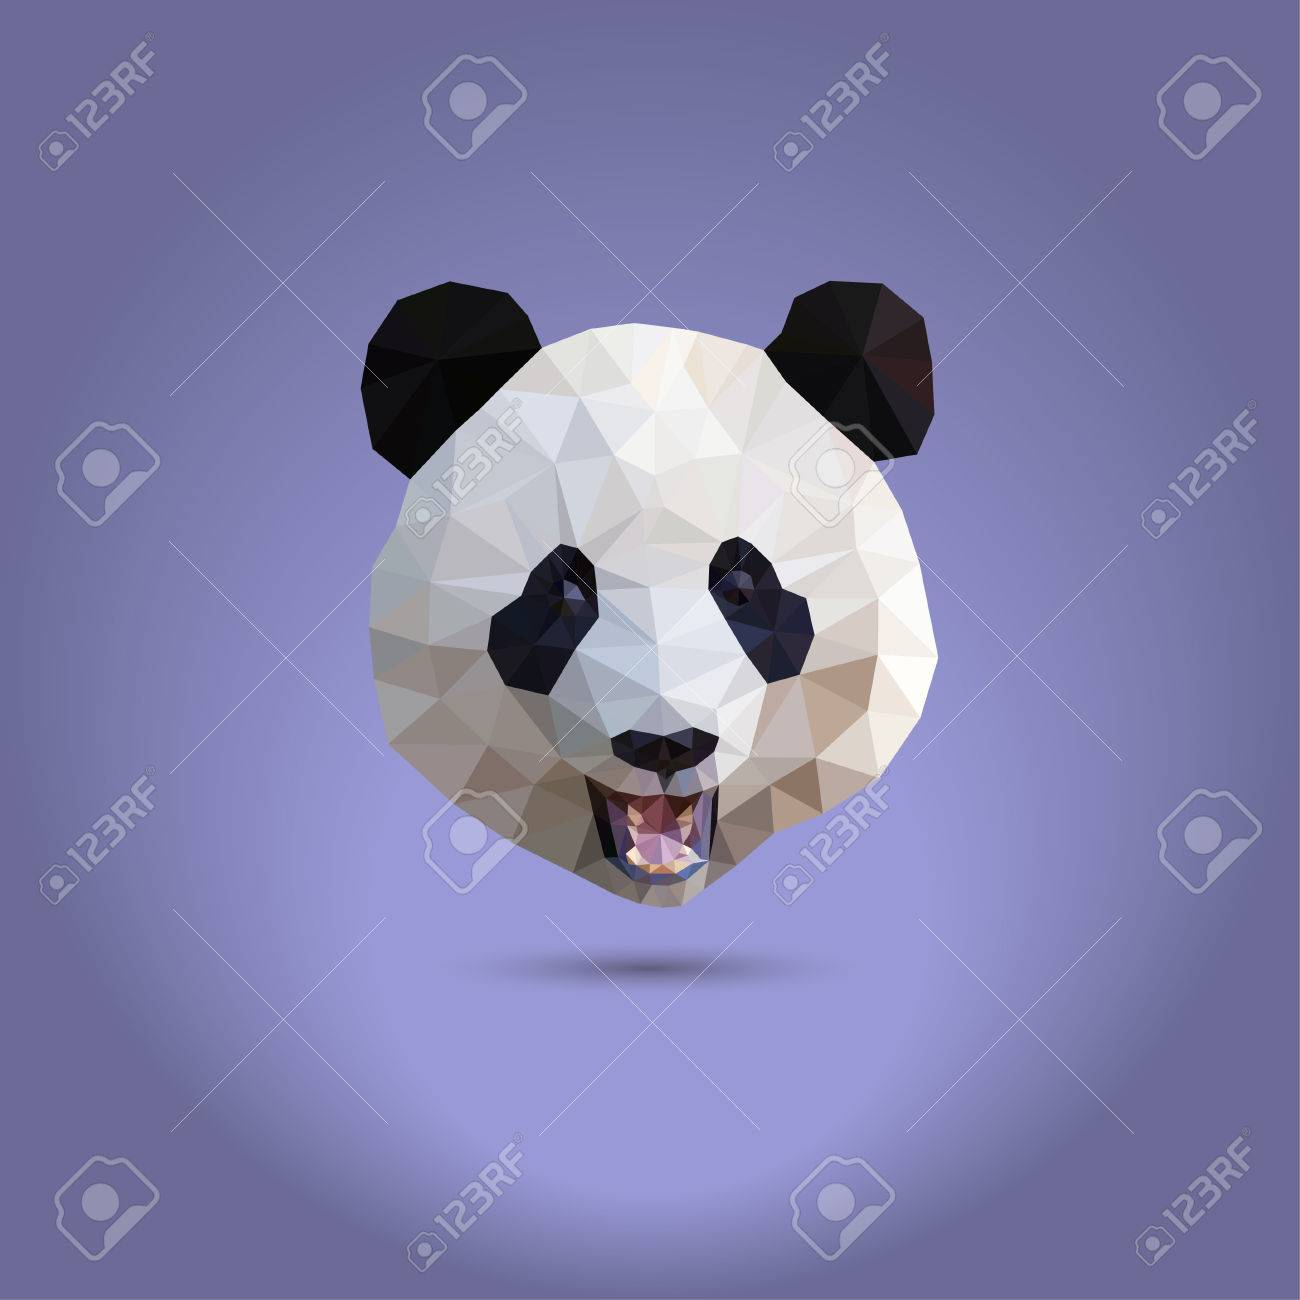 Low Poly Panda The Head Of A Chinese Bear From Triangles Suitable For Printing